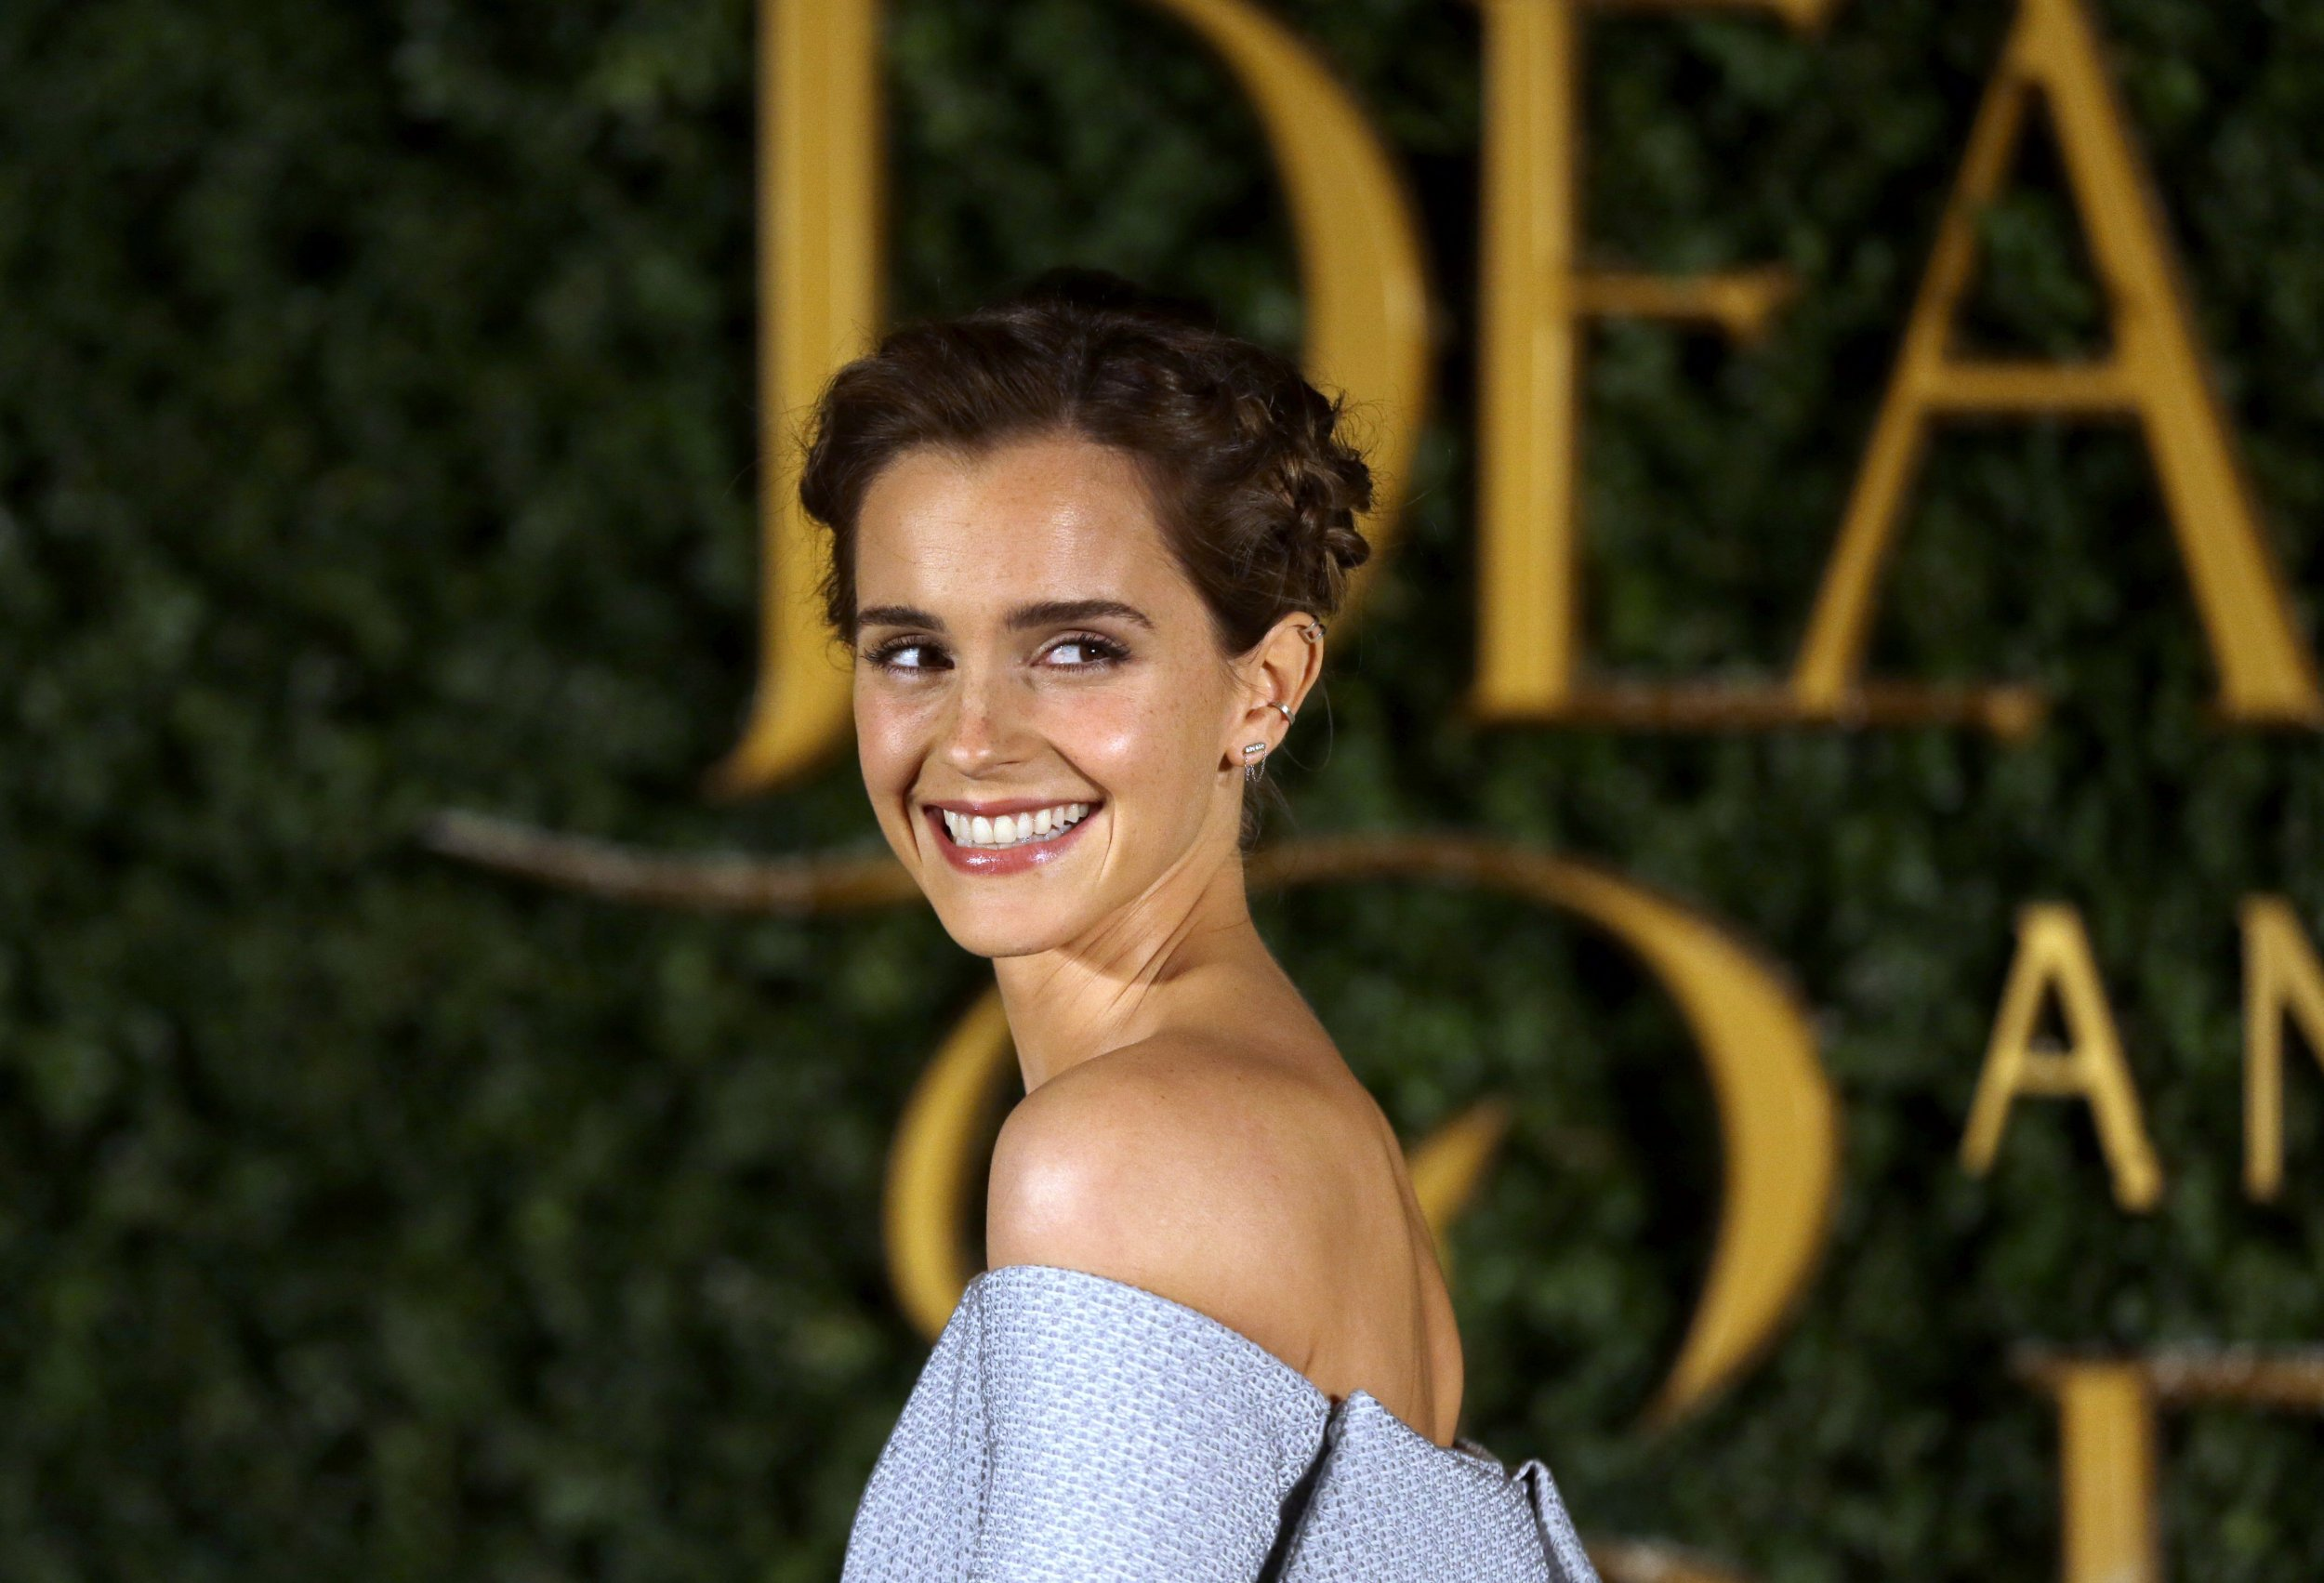 Emma Watson arrives for the Beauty And The Beast Premiere, in London, Thursday, Feb. 23, 2017. (AP Photo/Alastair Grant)